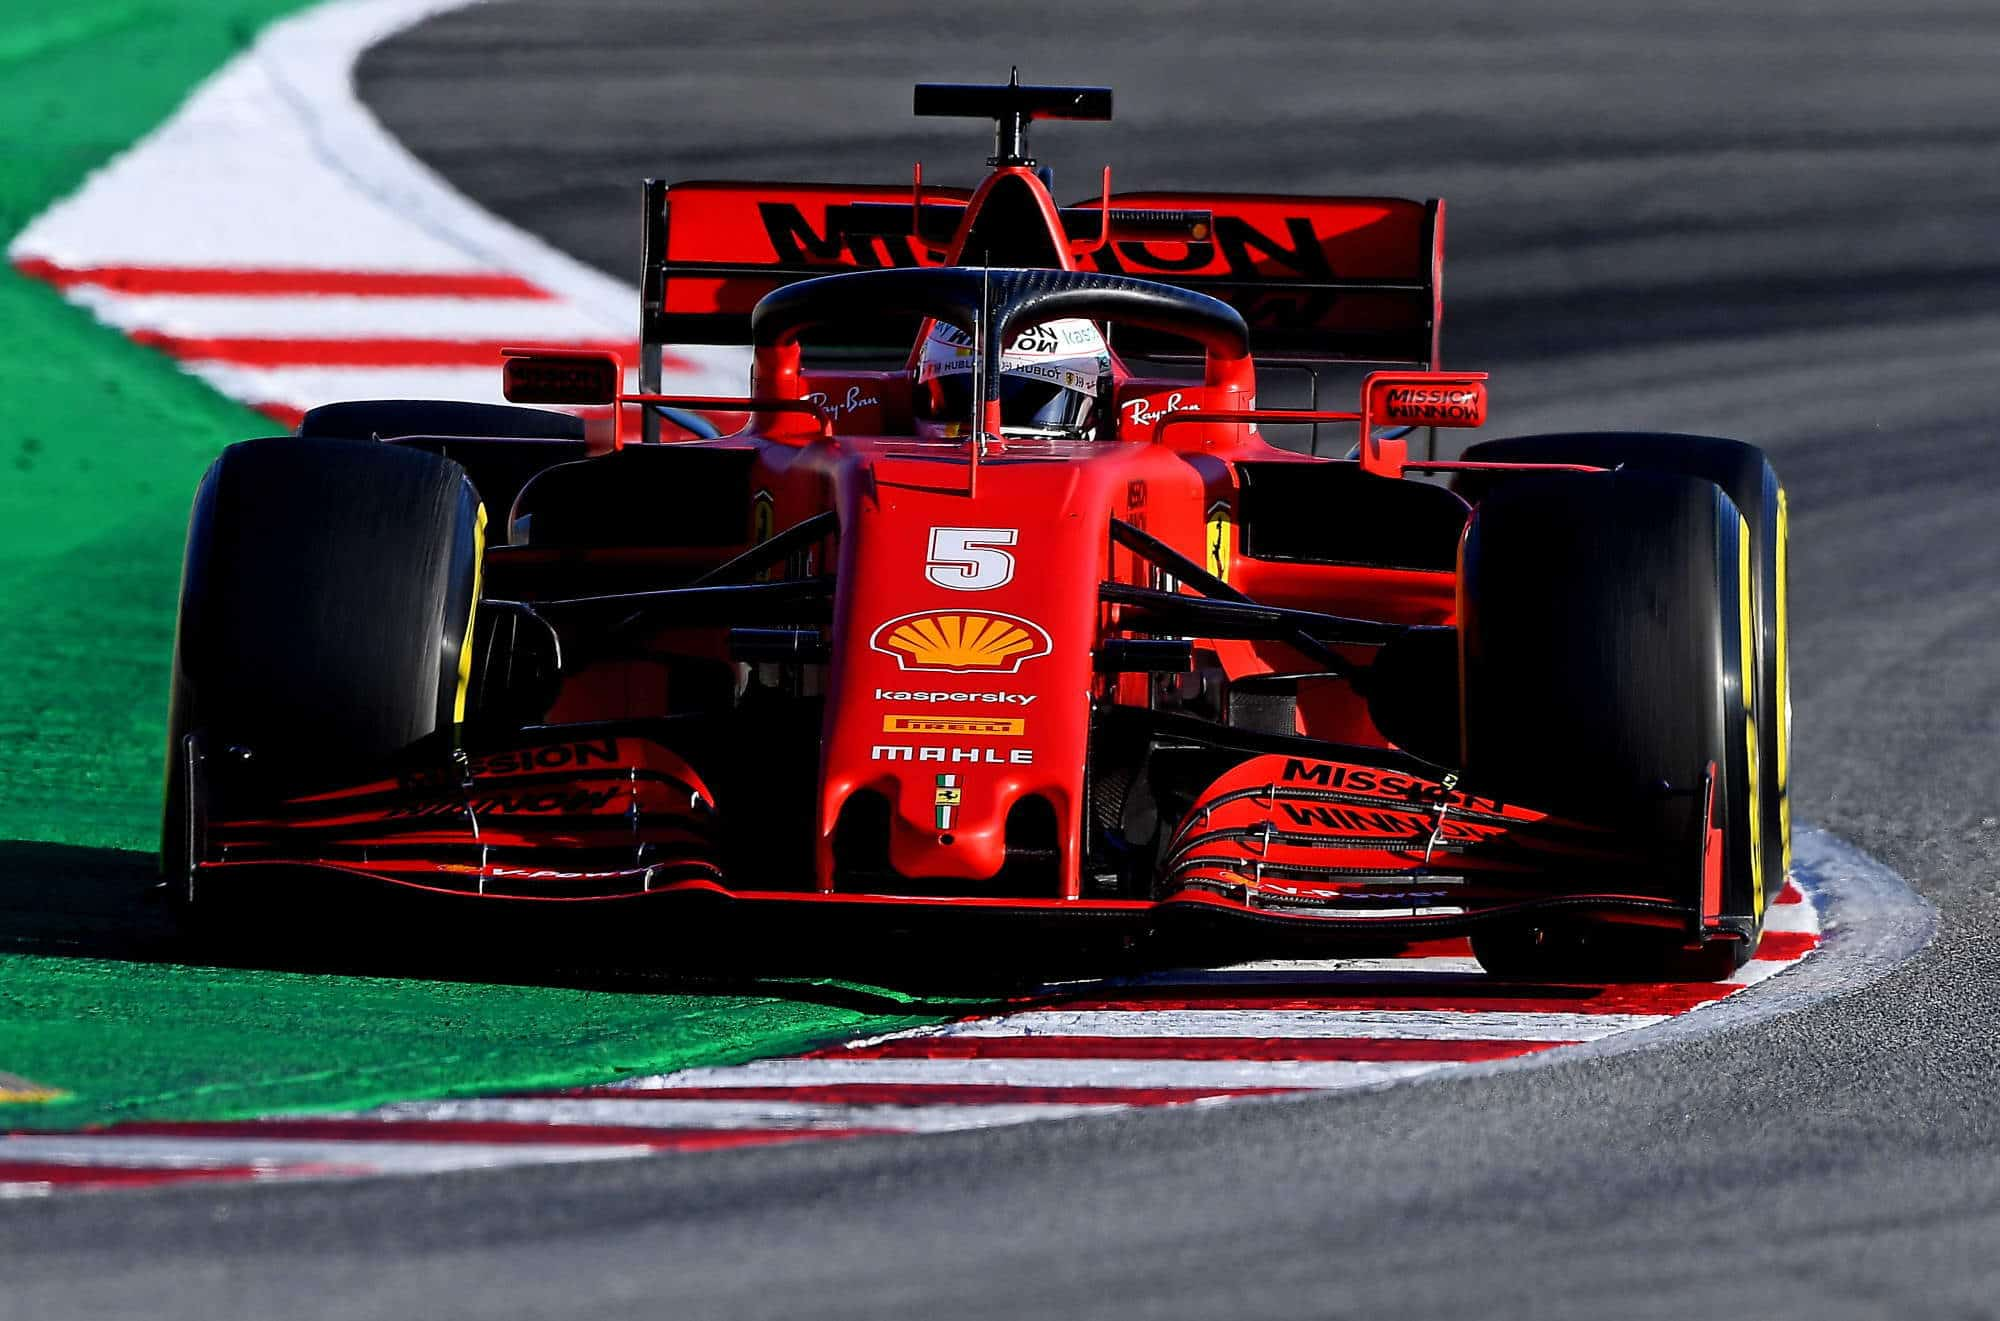 Vettel-Ferrari-SF1000-Barcelona-Test-1-Day-2-Photo-Ferrari